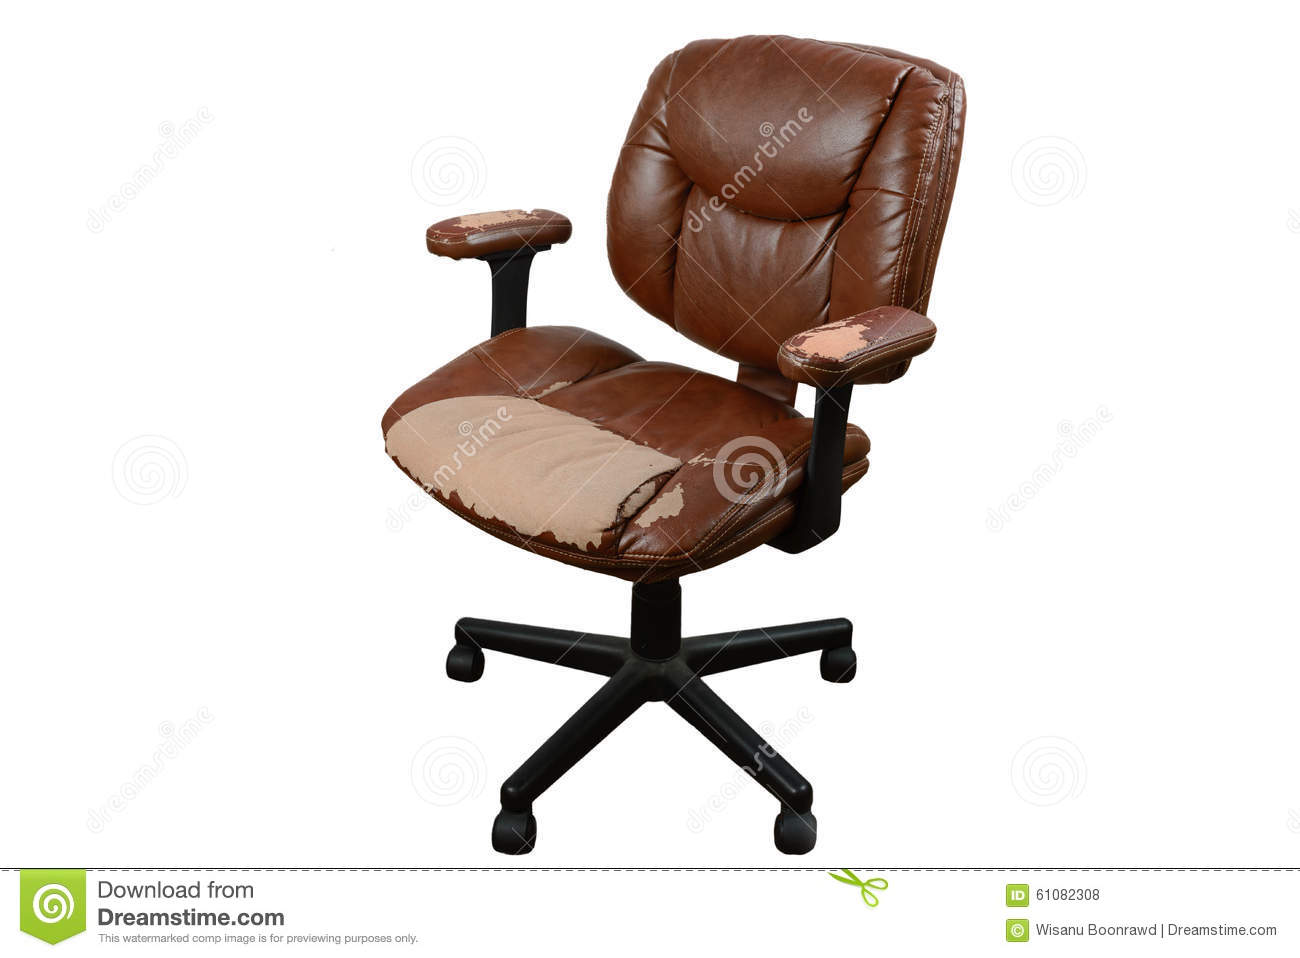 worn out brown leather office chair isolate background stock photo